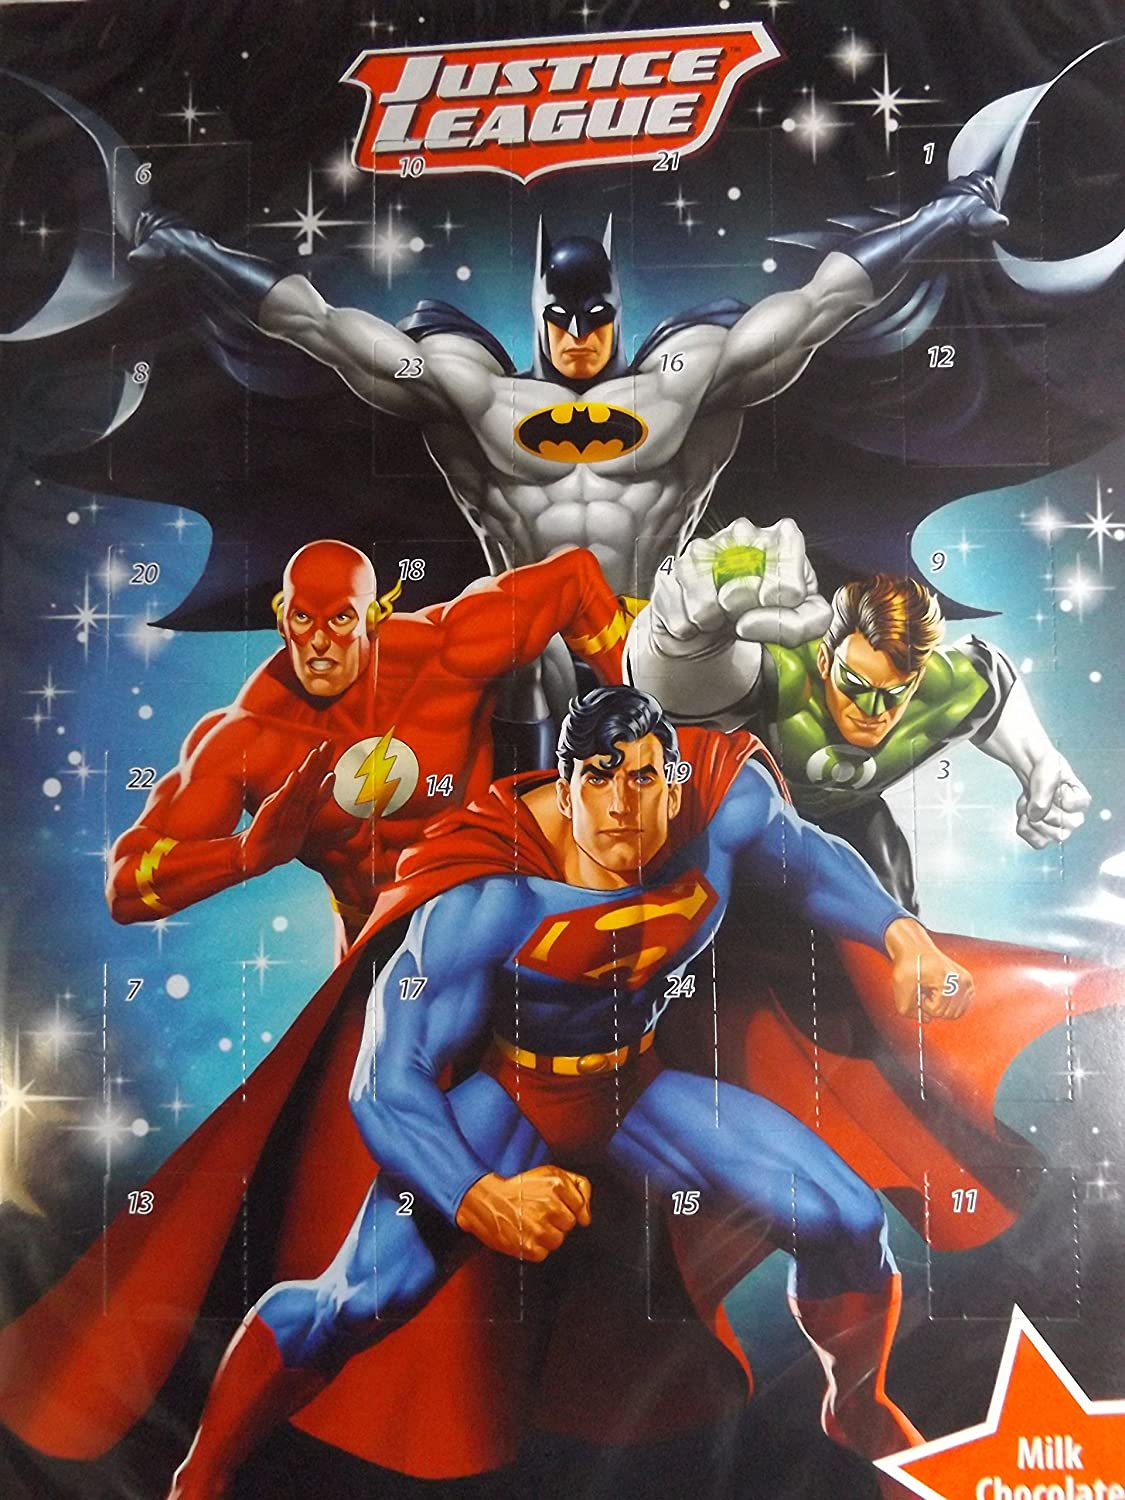 Advent Calendar Justice League Superman Batman Flash Green Lantern